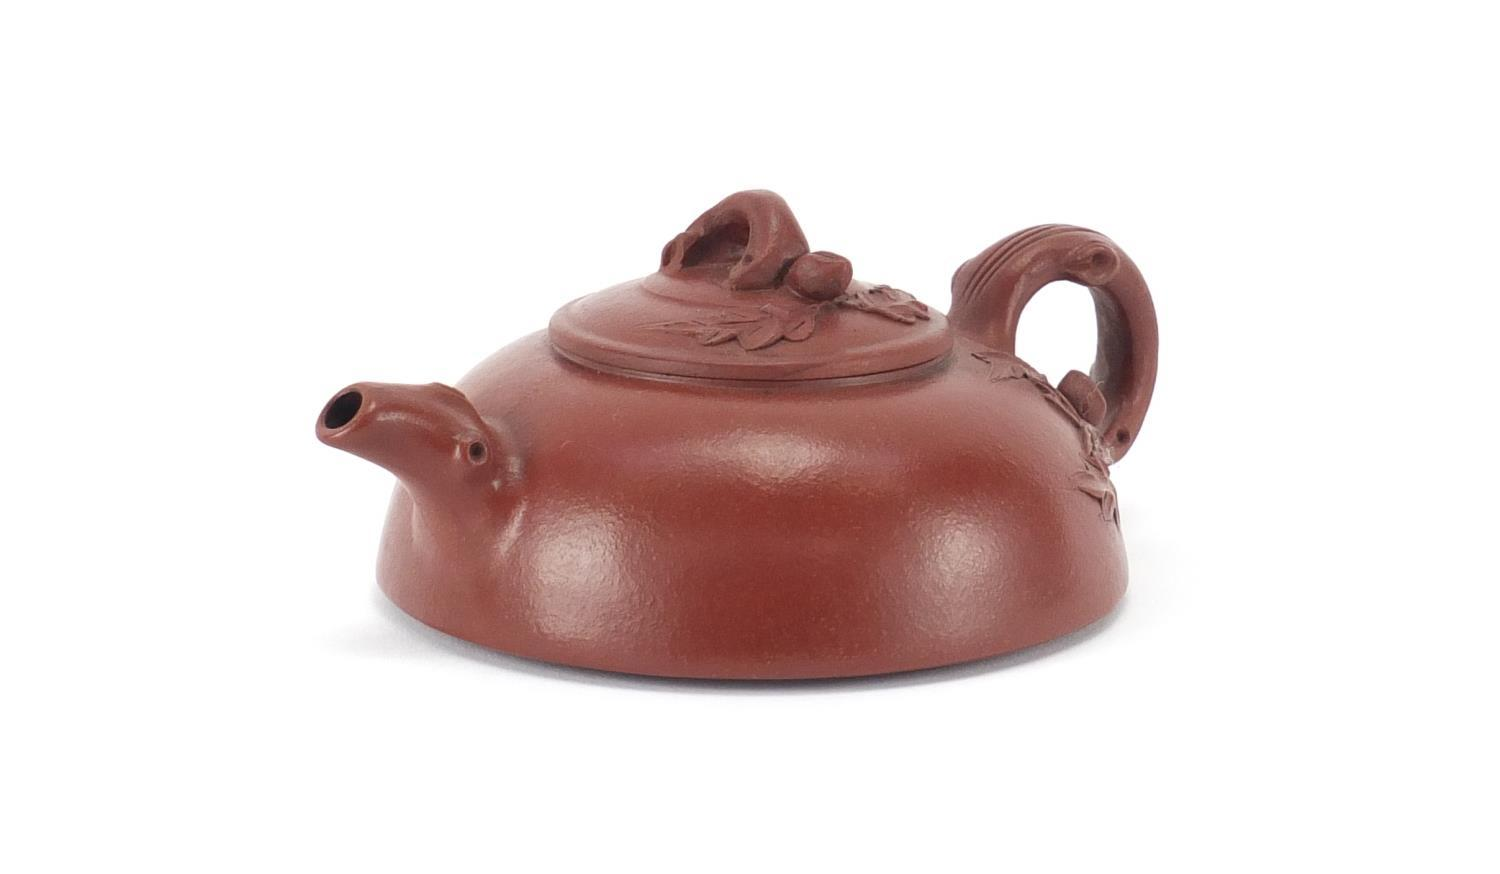 Lot 202 - Chinese yixing terracotta squatted teapot with naturalistic handle and spout, impressed marks to the